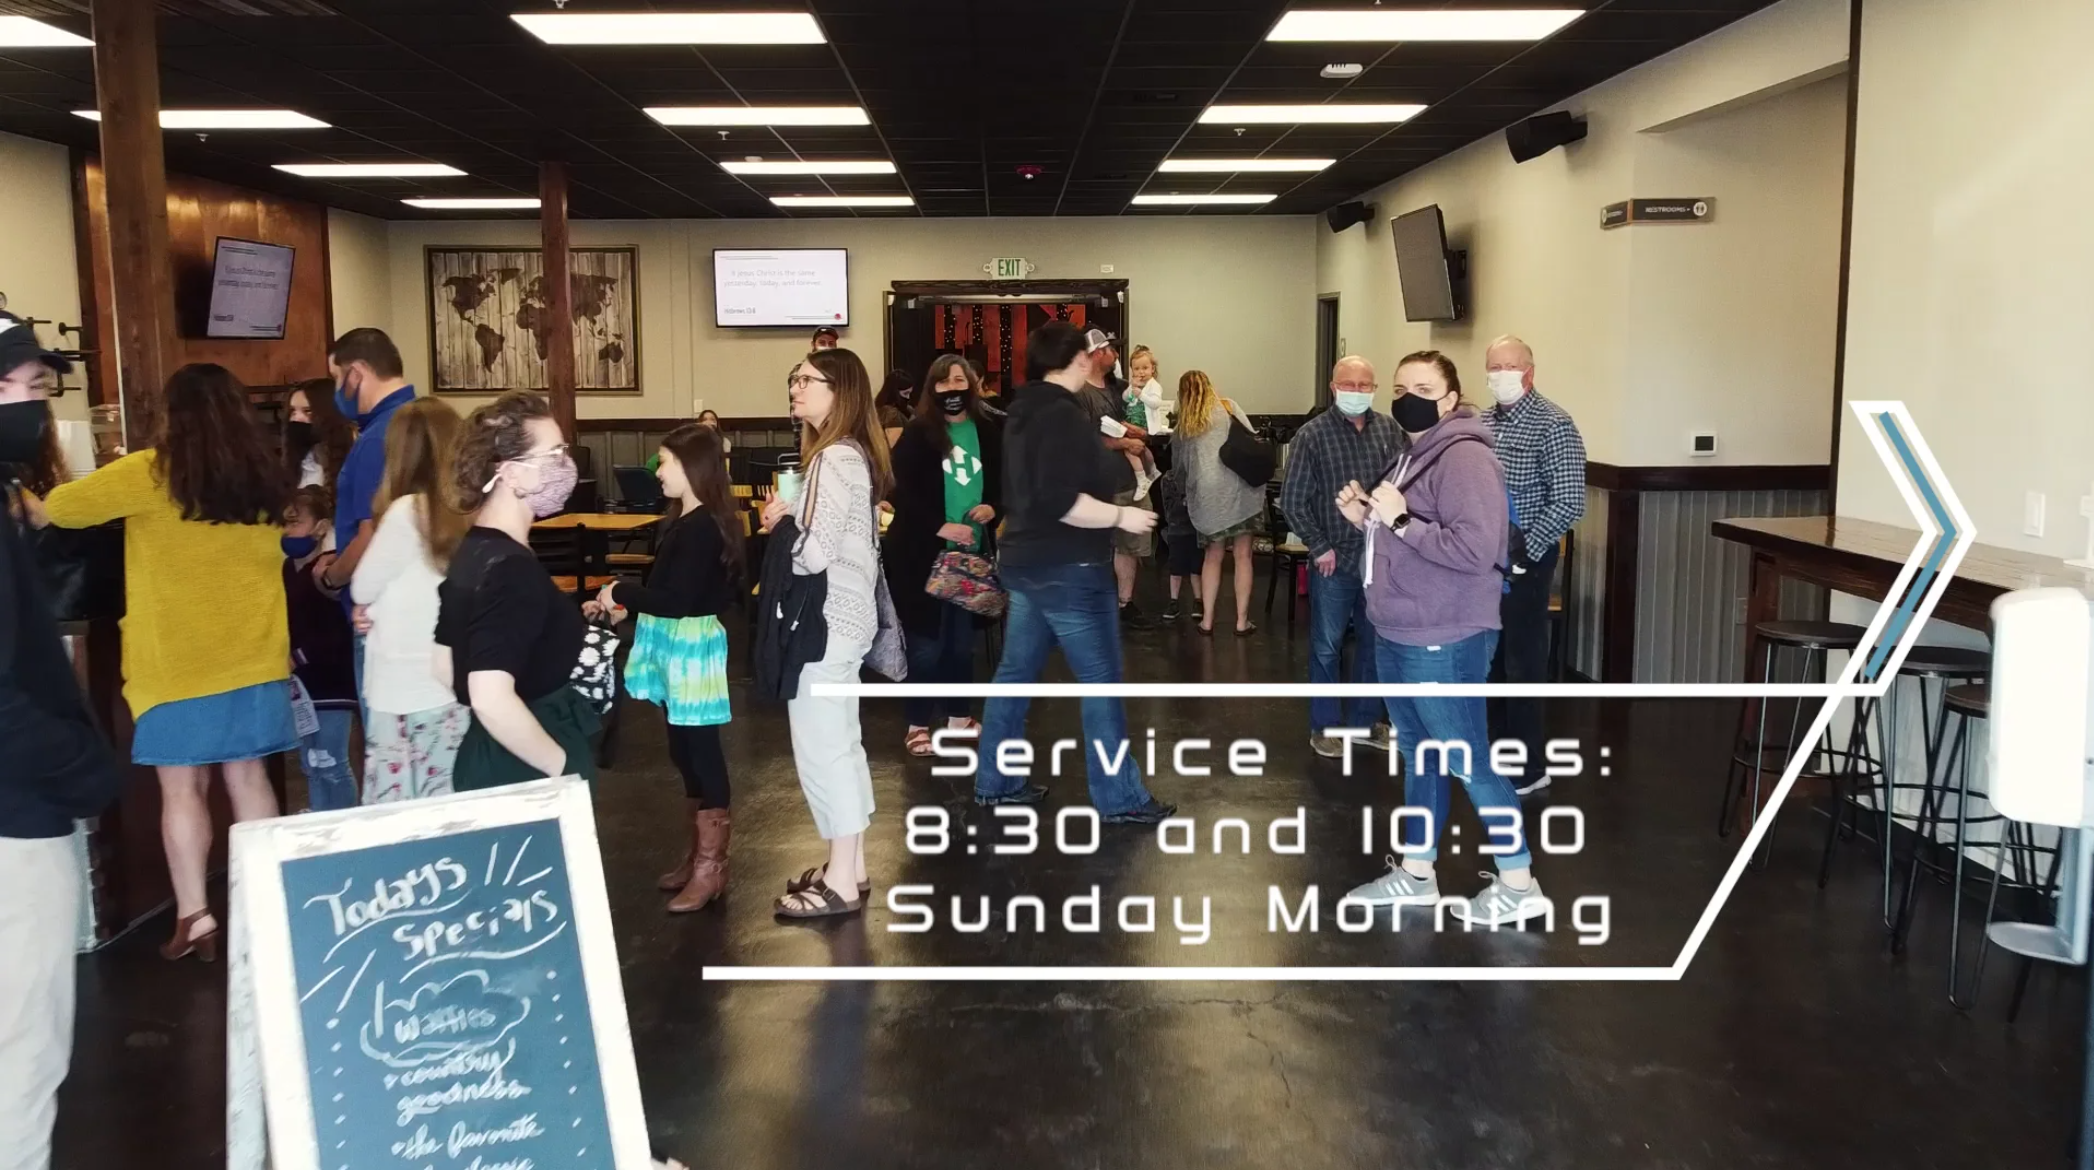 View the video about our church